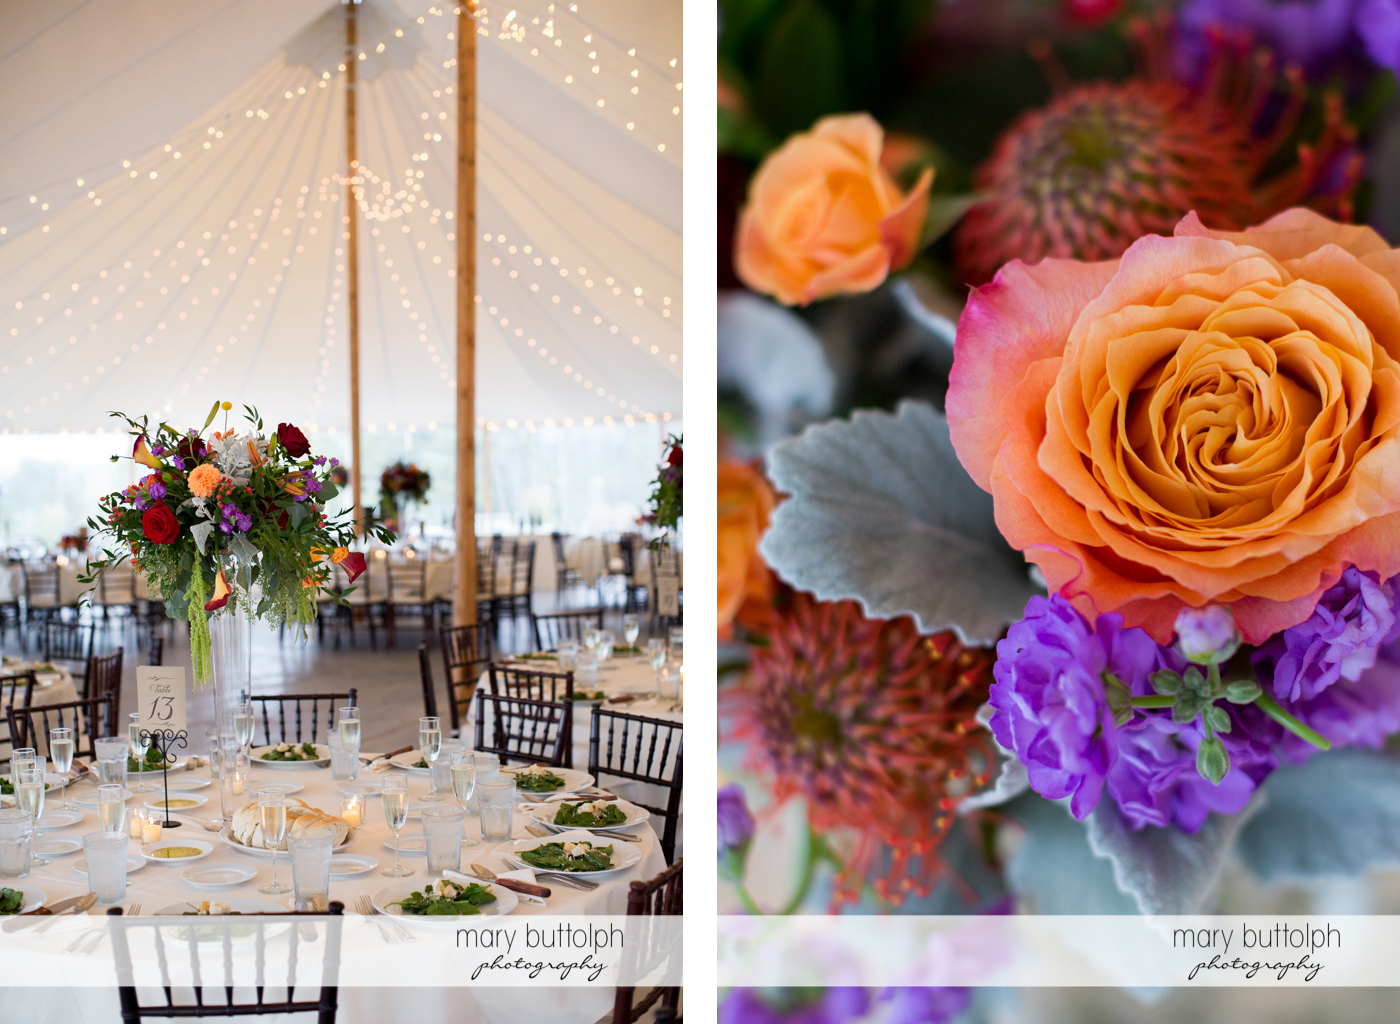 Colorful flowers adorn the tables at the wedding reception at Anyela's Vineyards Wedding